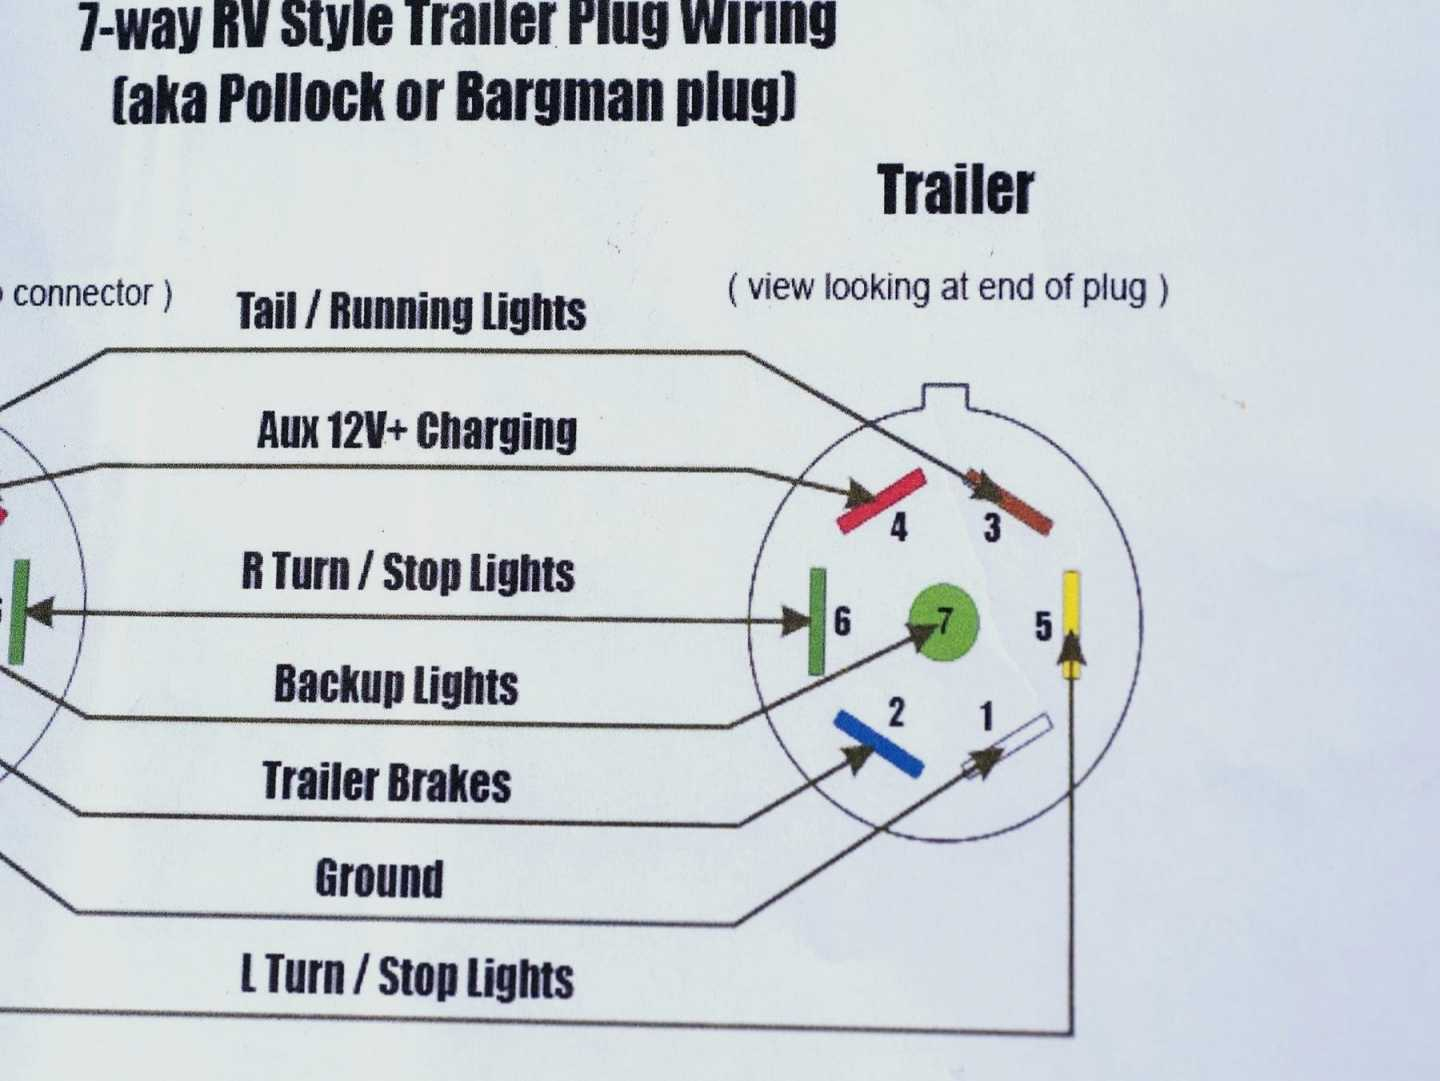 4 Way Flat Trailer Wiring Diagram - Wiring Diagrams - Trailer Wiring Diagram 4 Way Flat